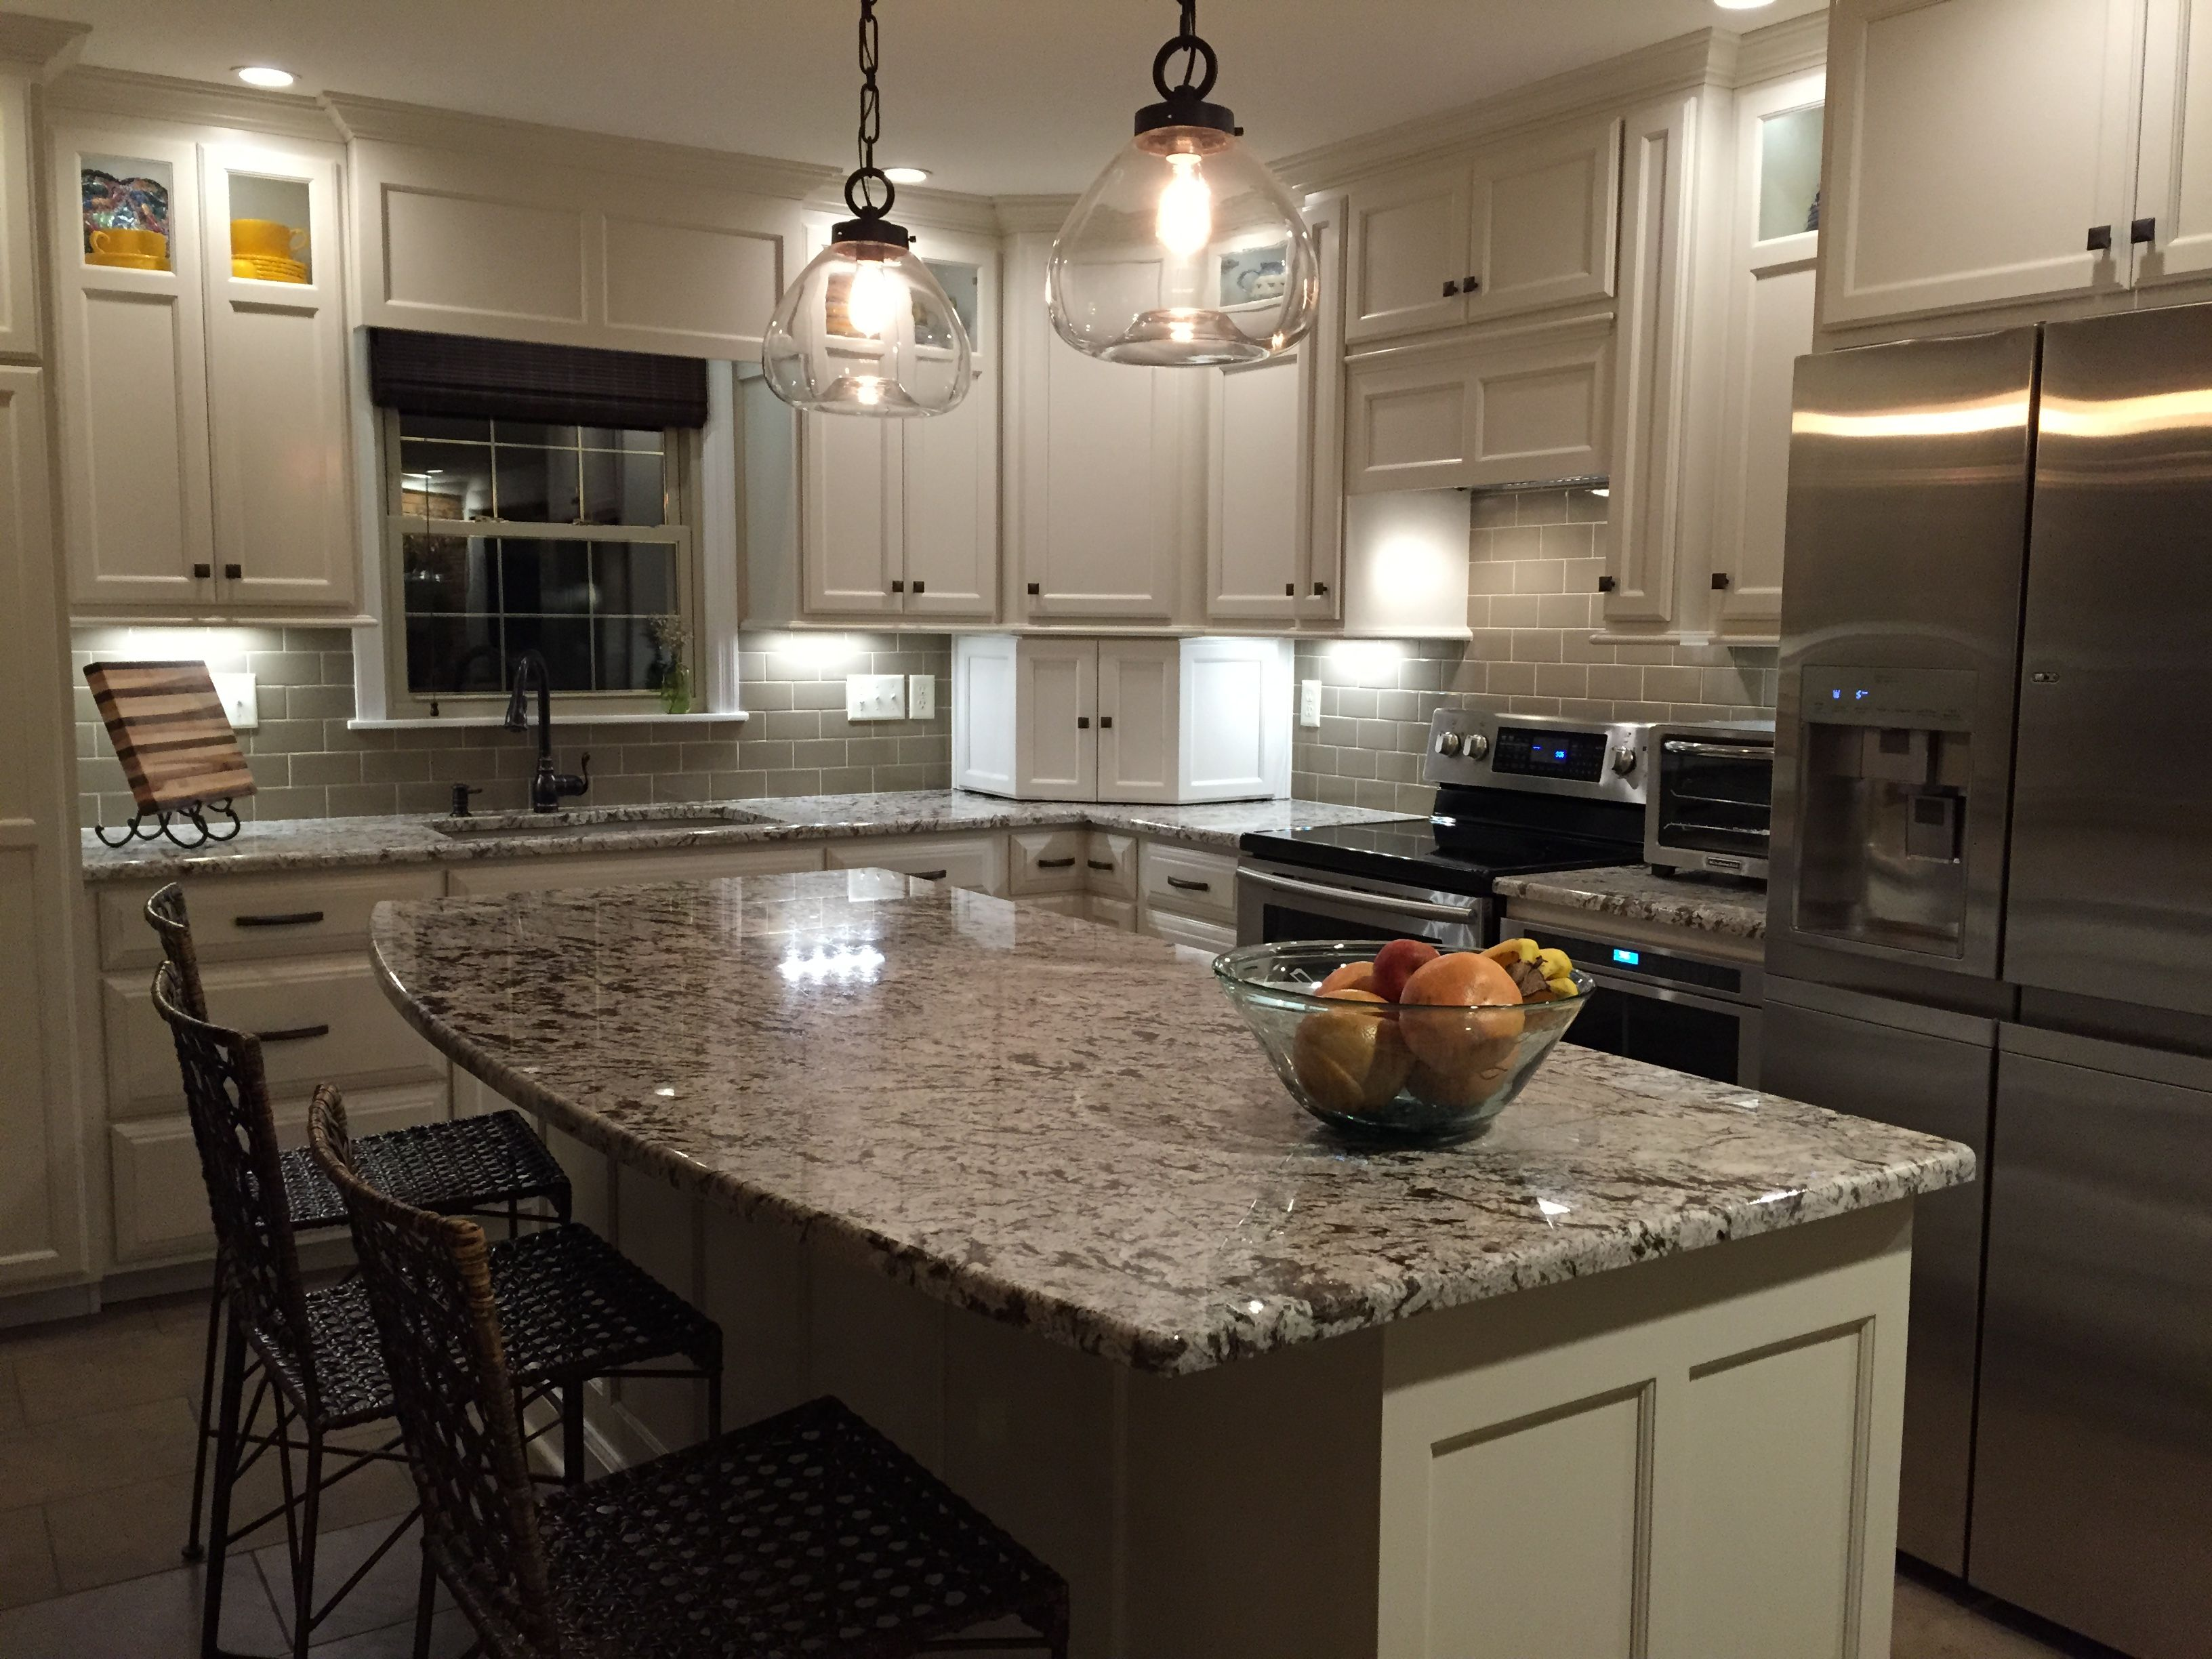 Remodel Small Kitchen With Under Cabinet Lighting Subway